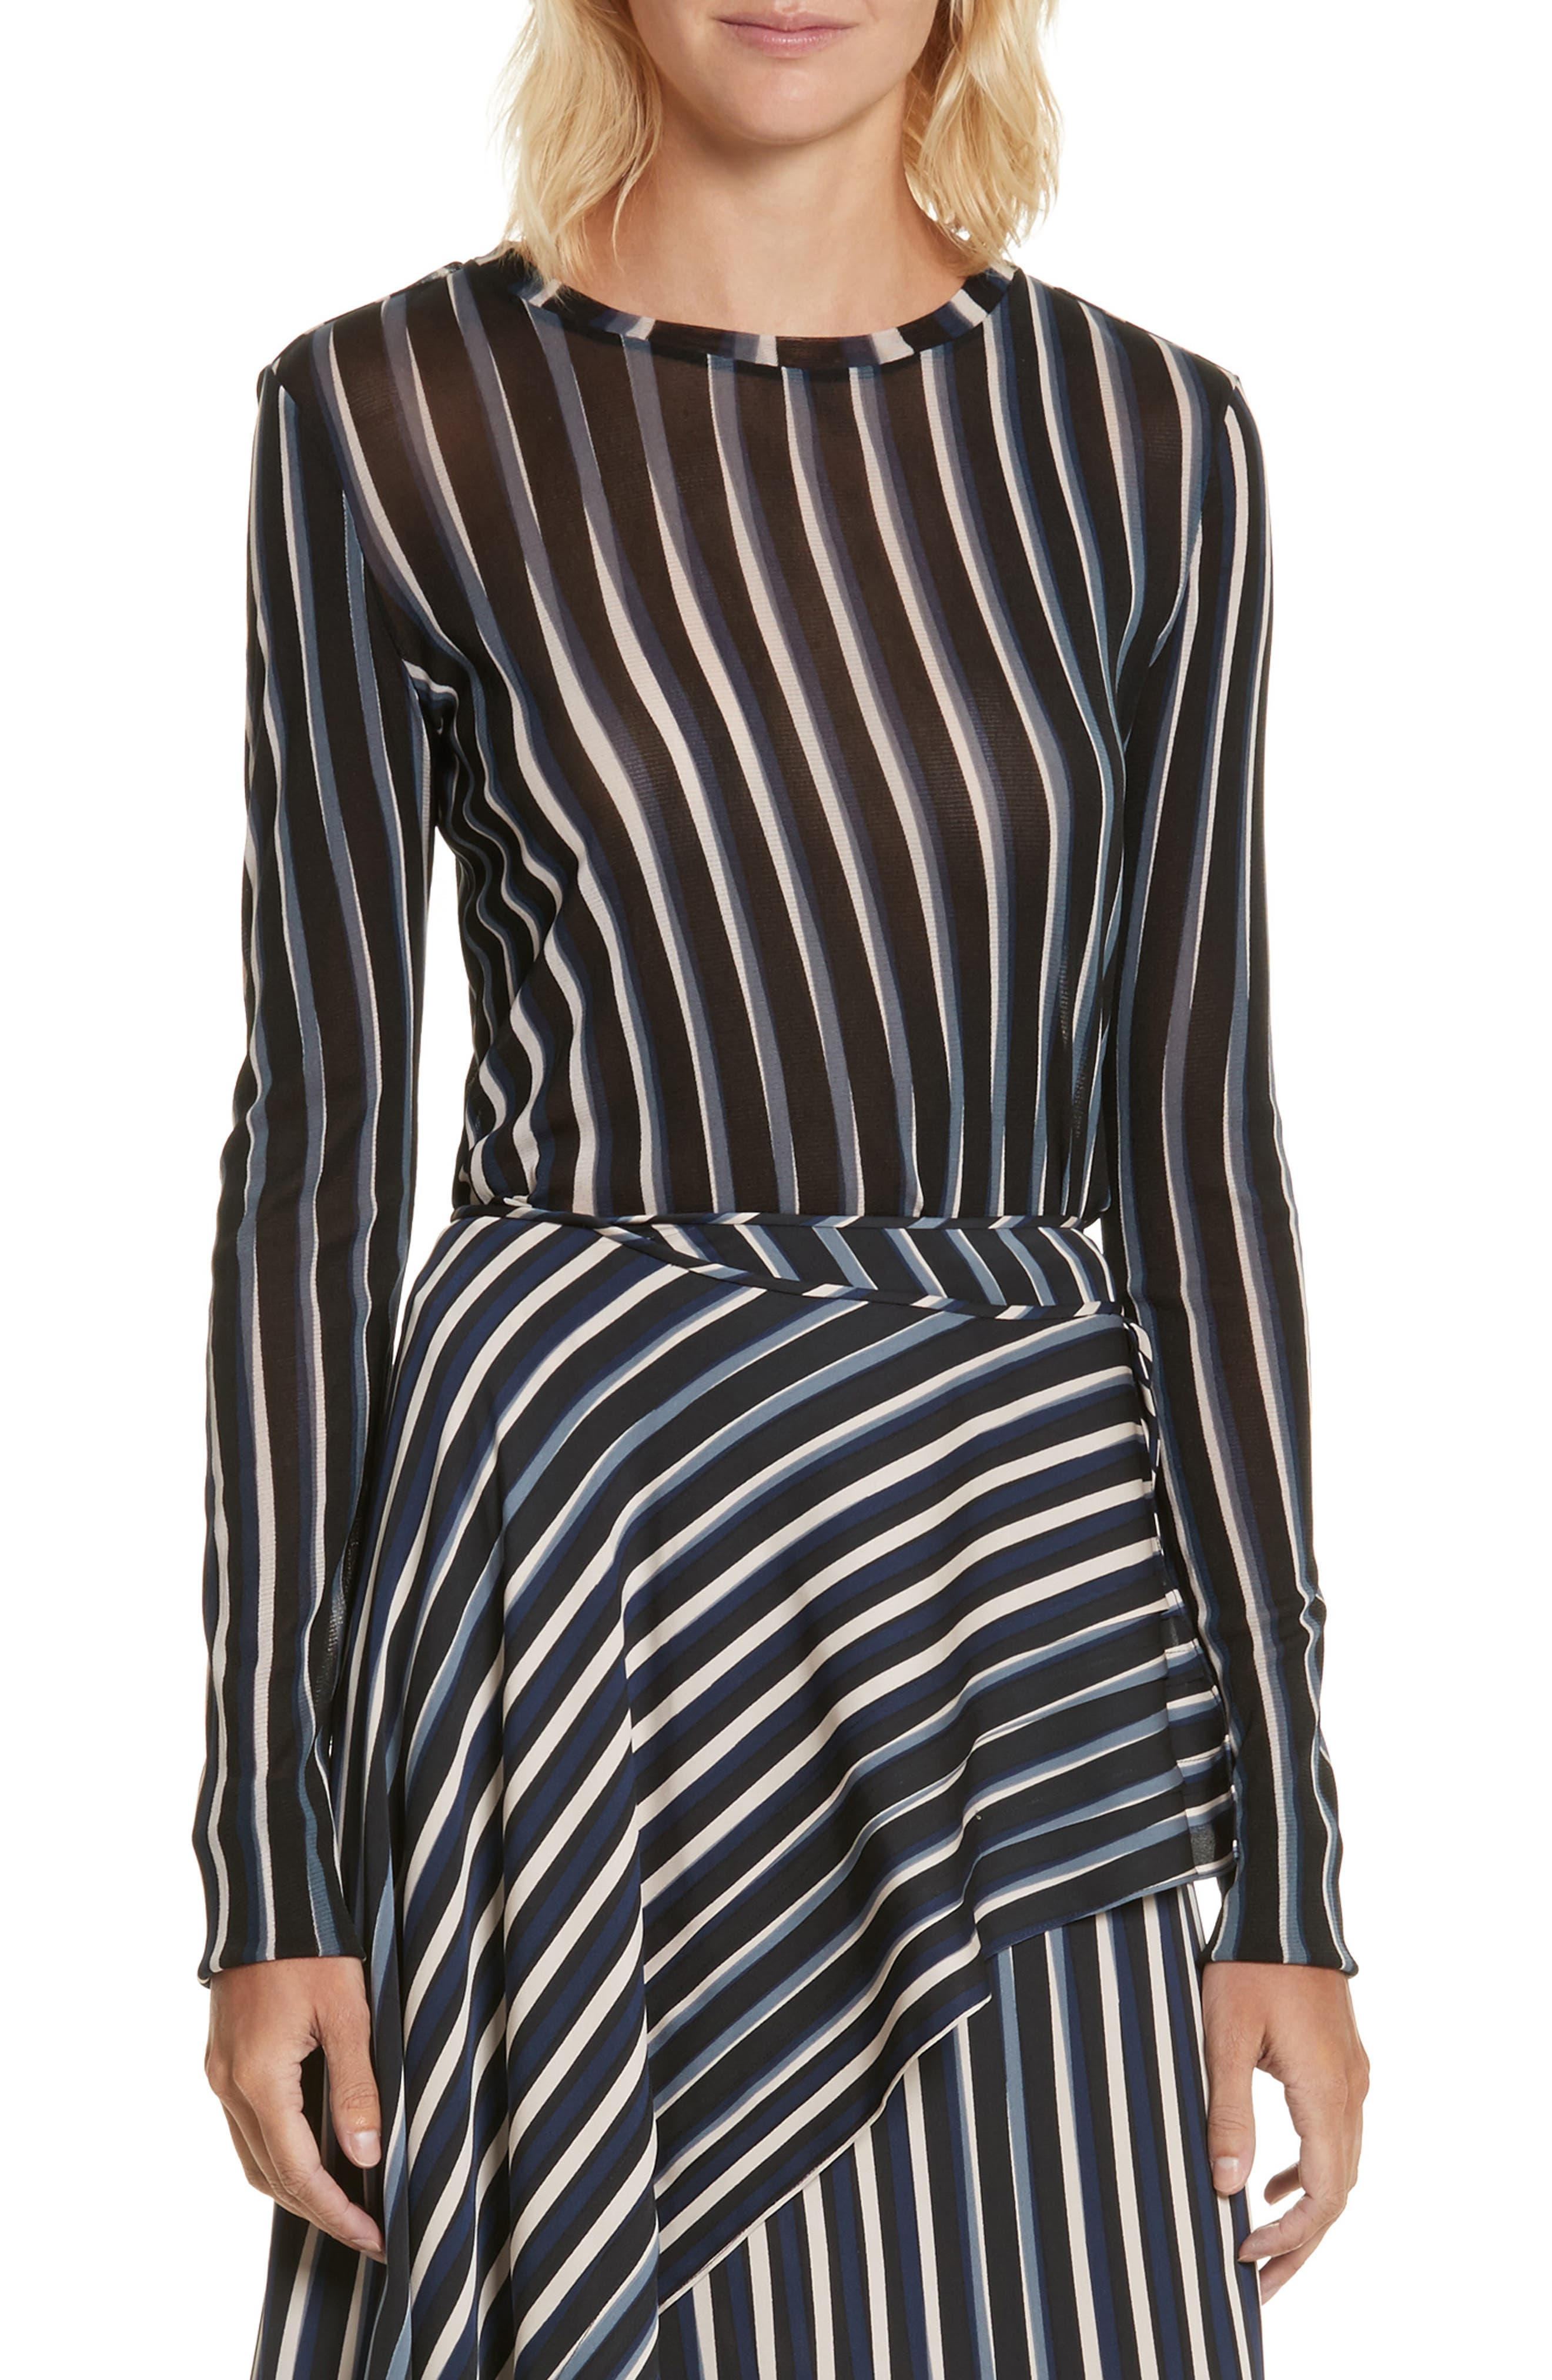 Diane von Furstenberg Fitted Print Top,                             Main thumbnail 1, color,                             004